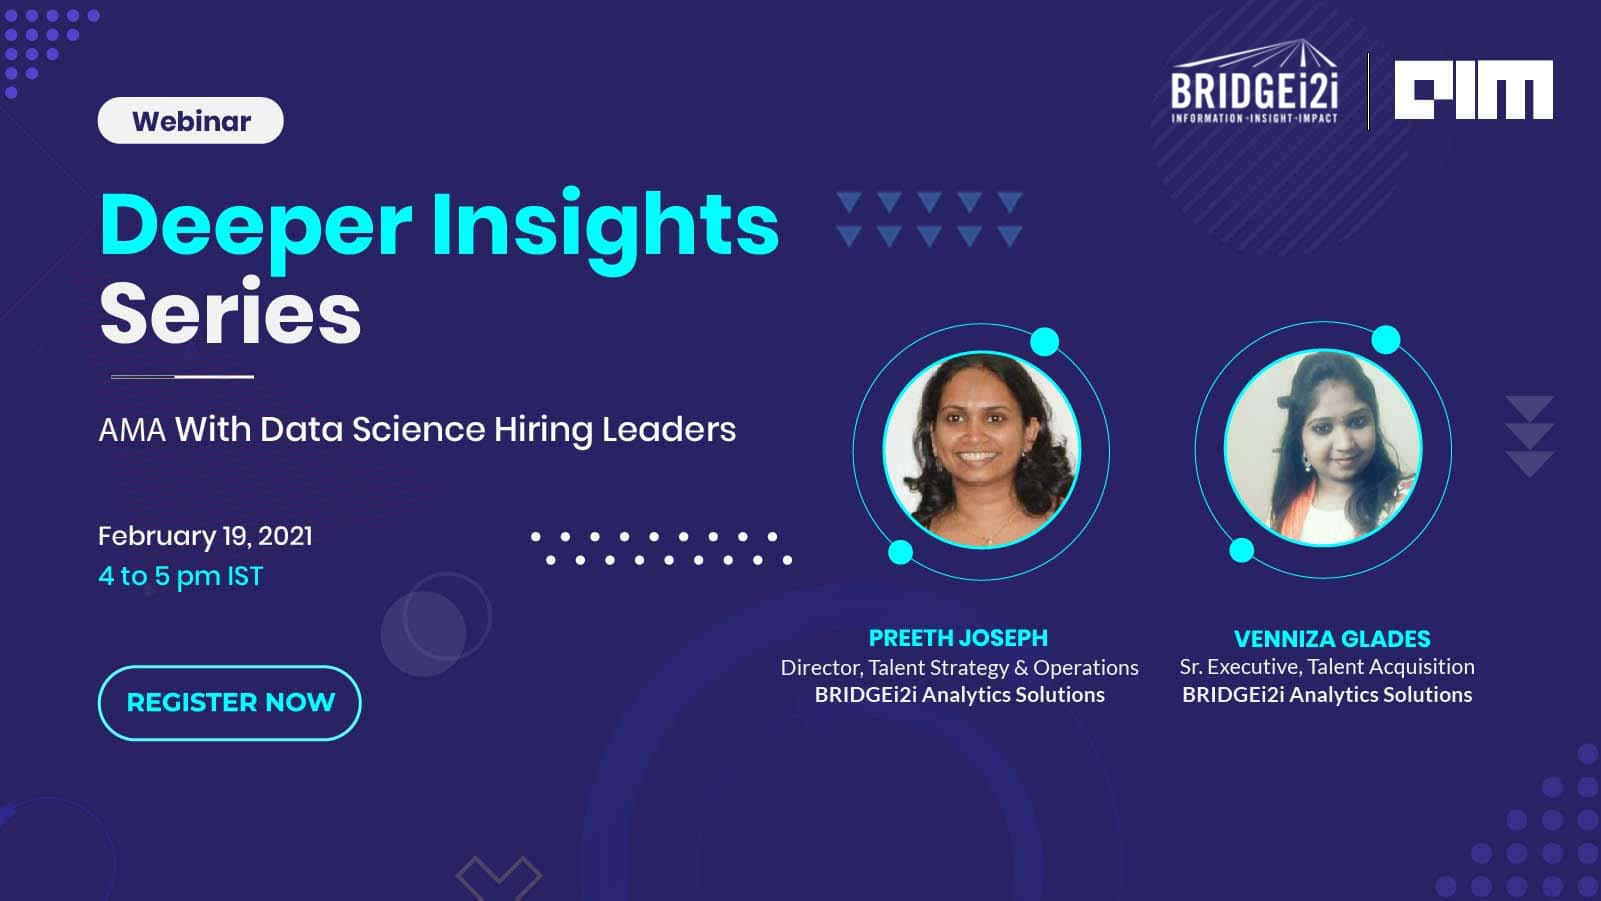 Deeper Insights Series: AMA With Data Science Hiring Leaders